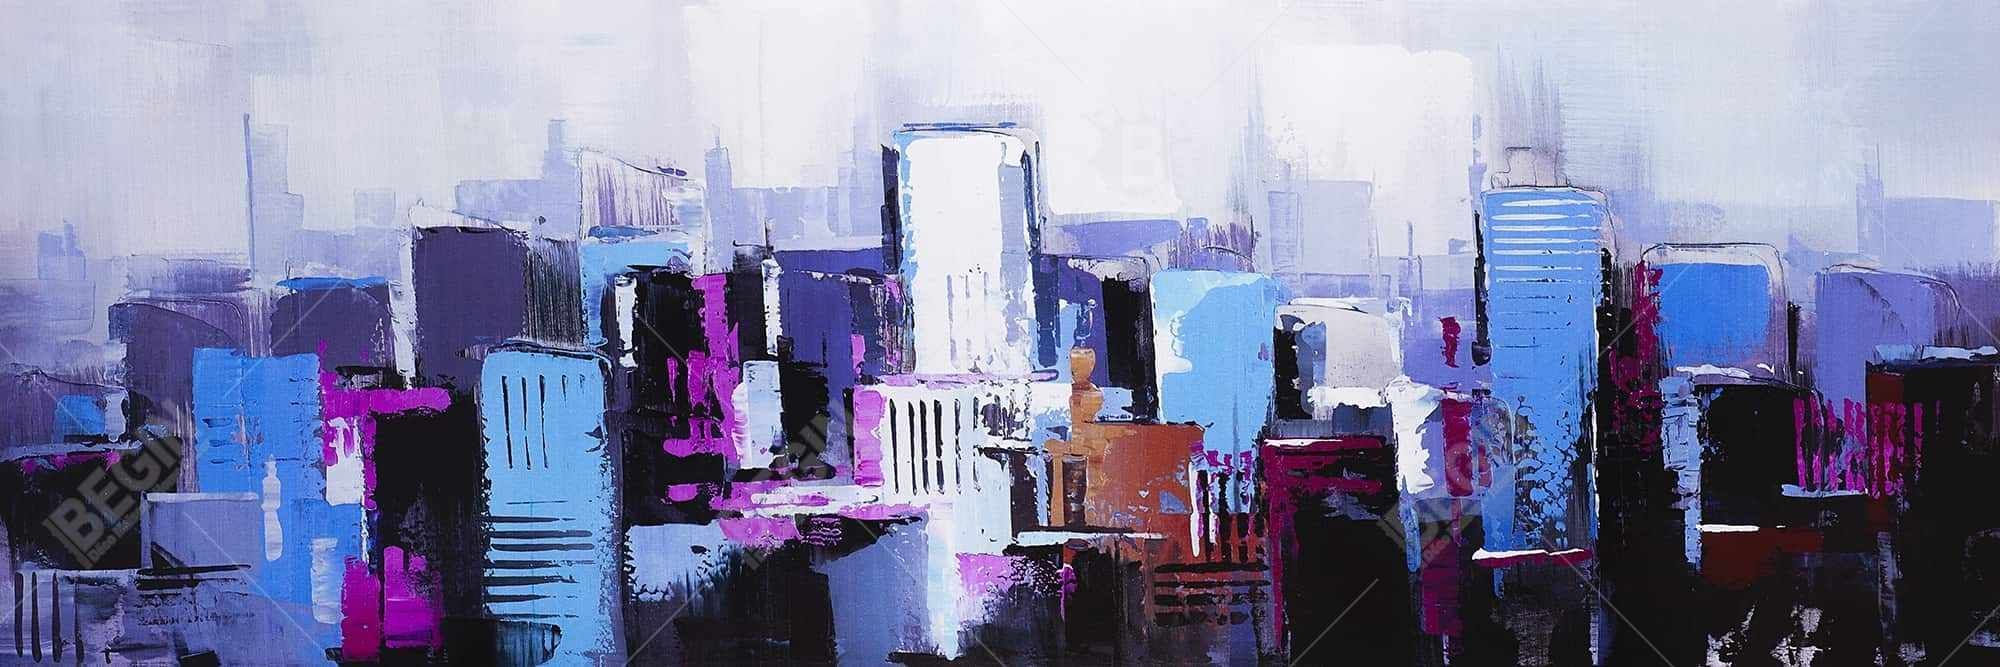 Abstract blue & purple city